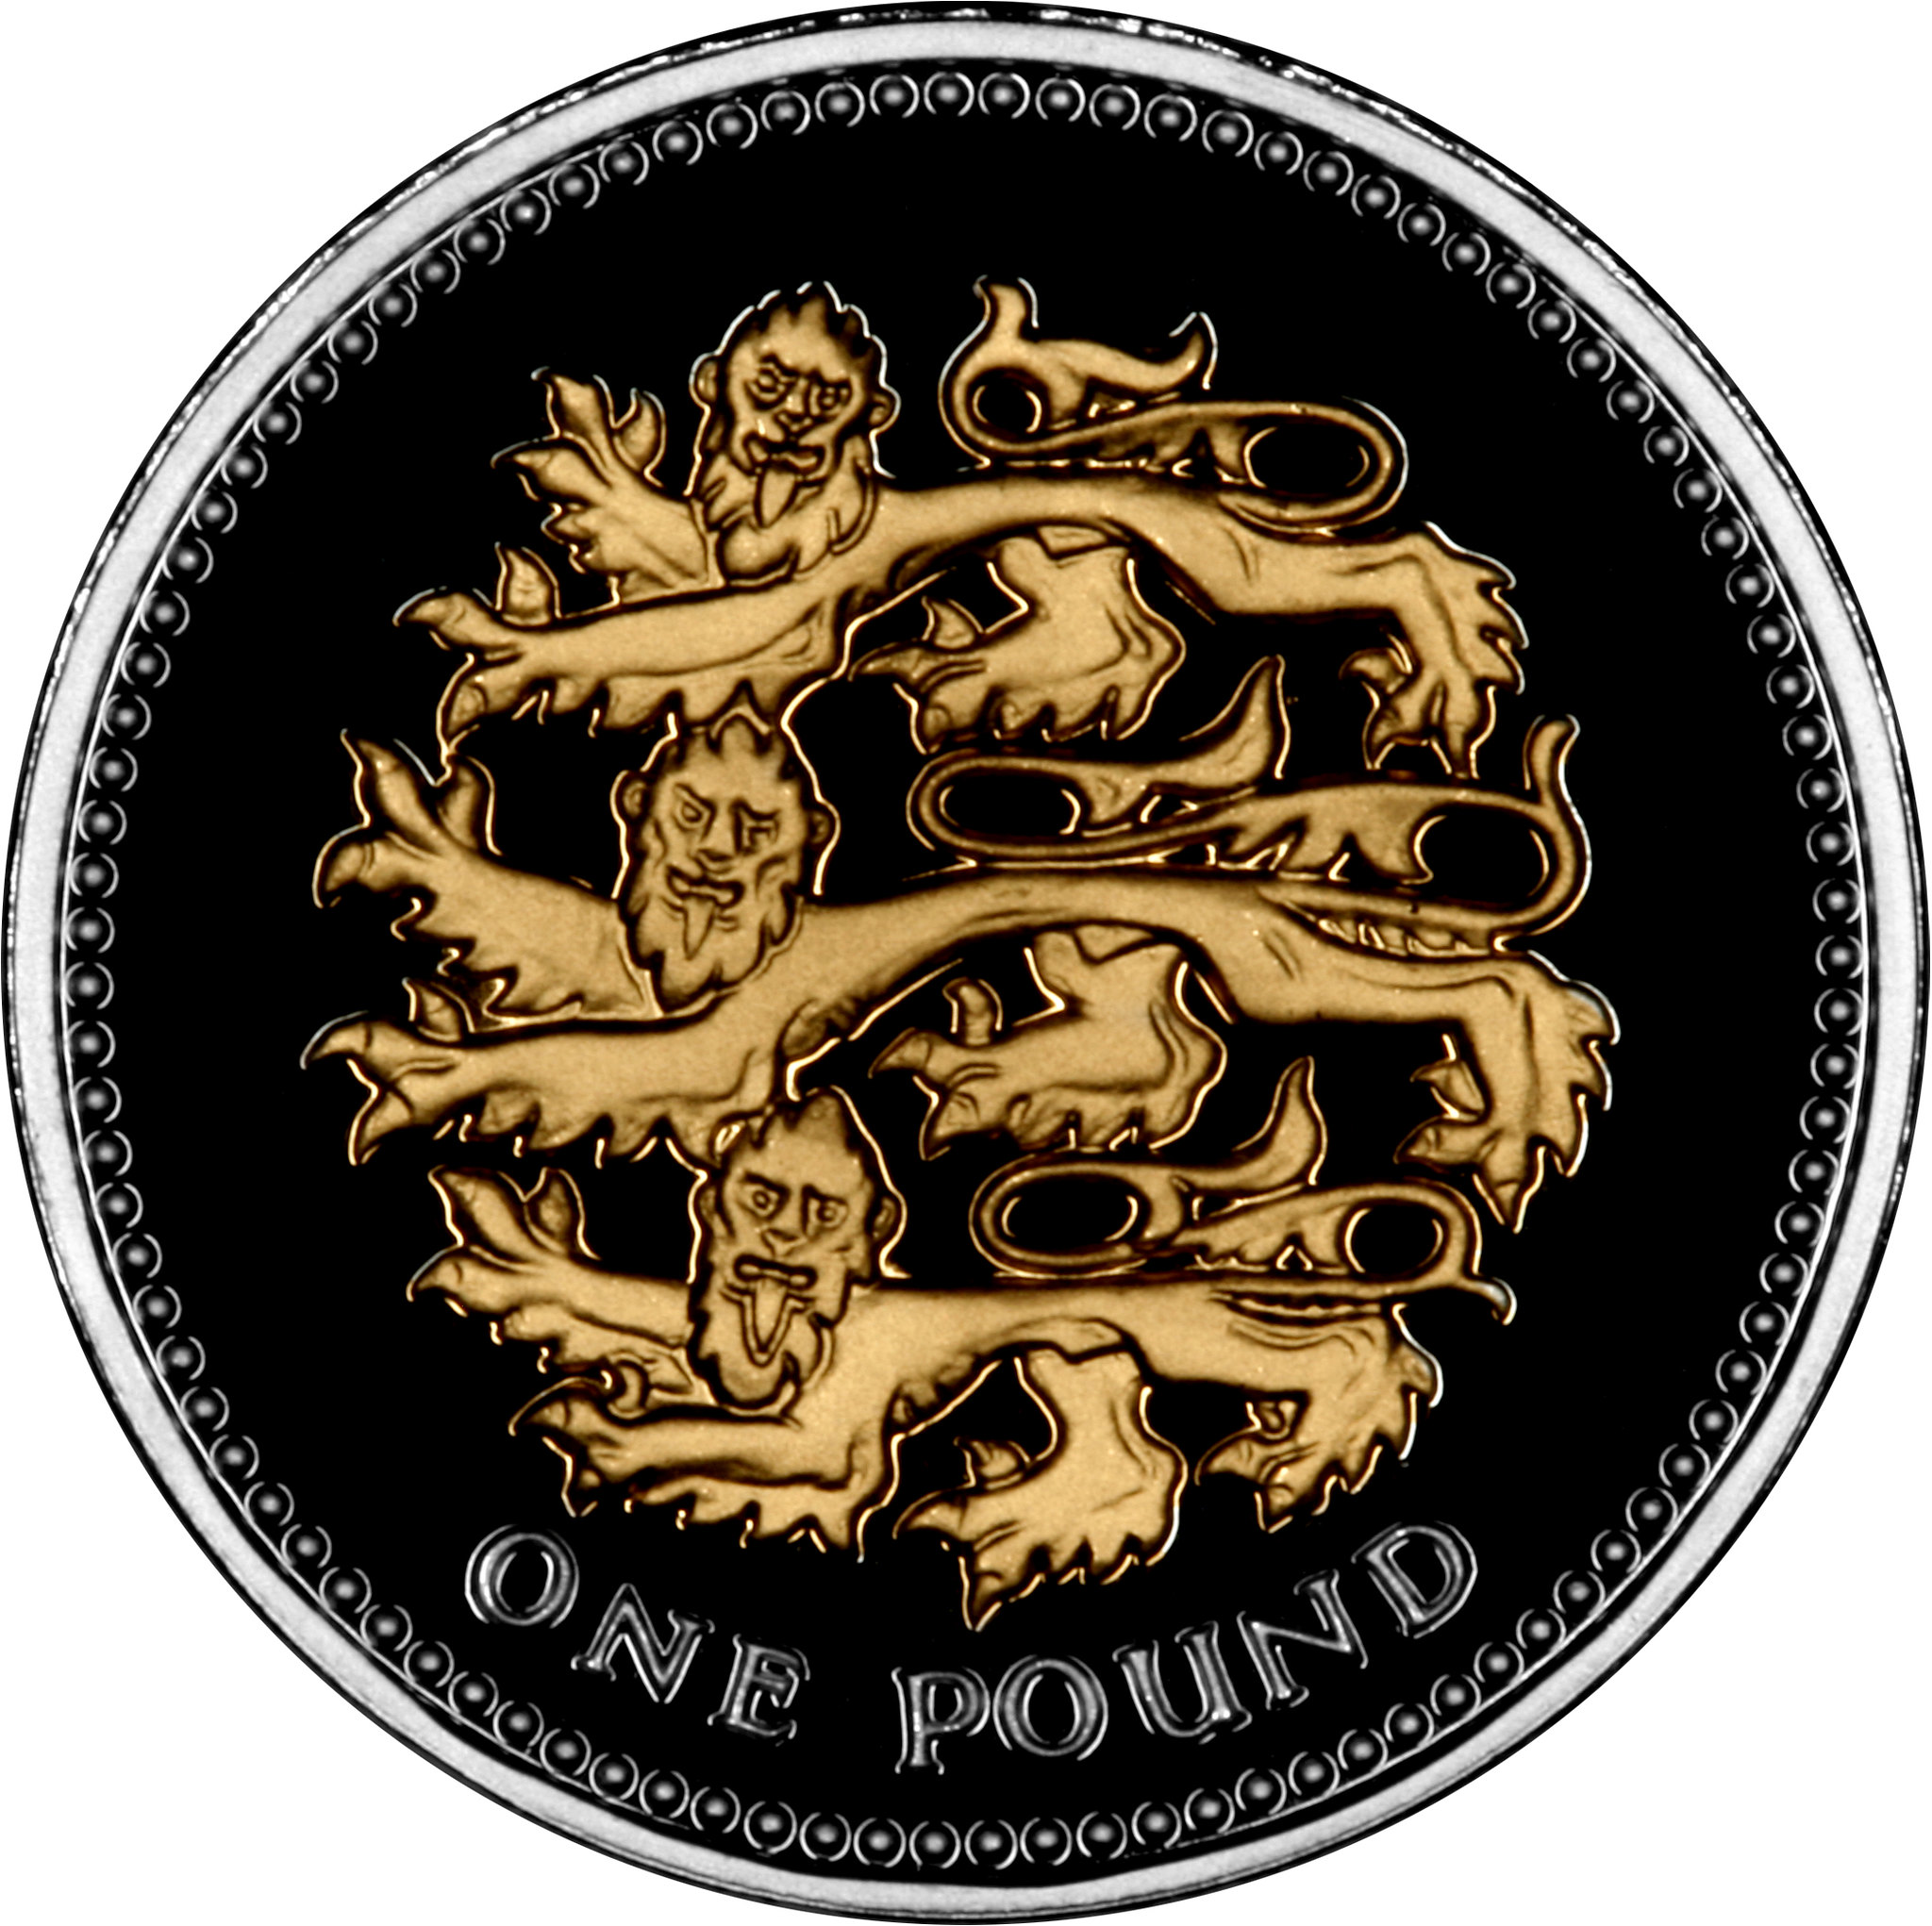 One Pound 2008 Three Lions (NCLT): Photo 2008 UK £1 - Silver Proof 25th Anniversary 14 Coin Set